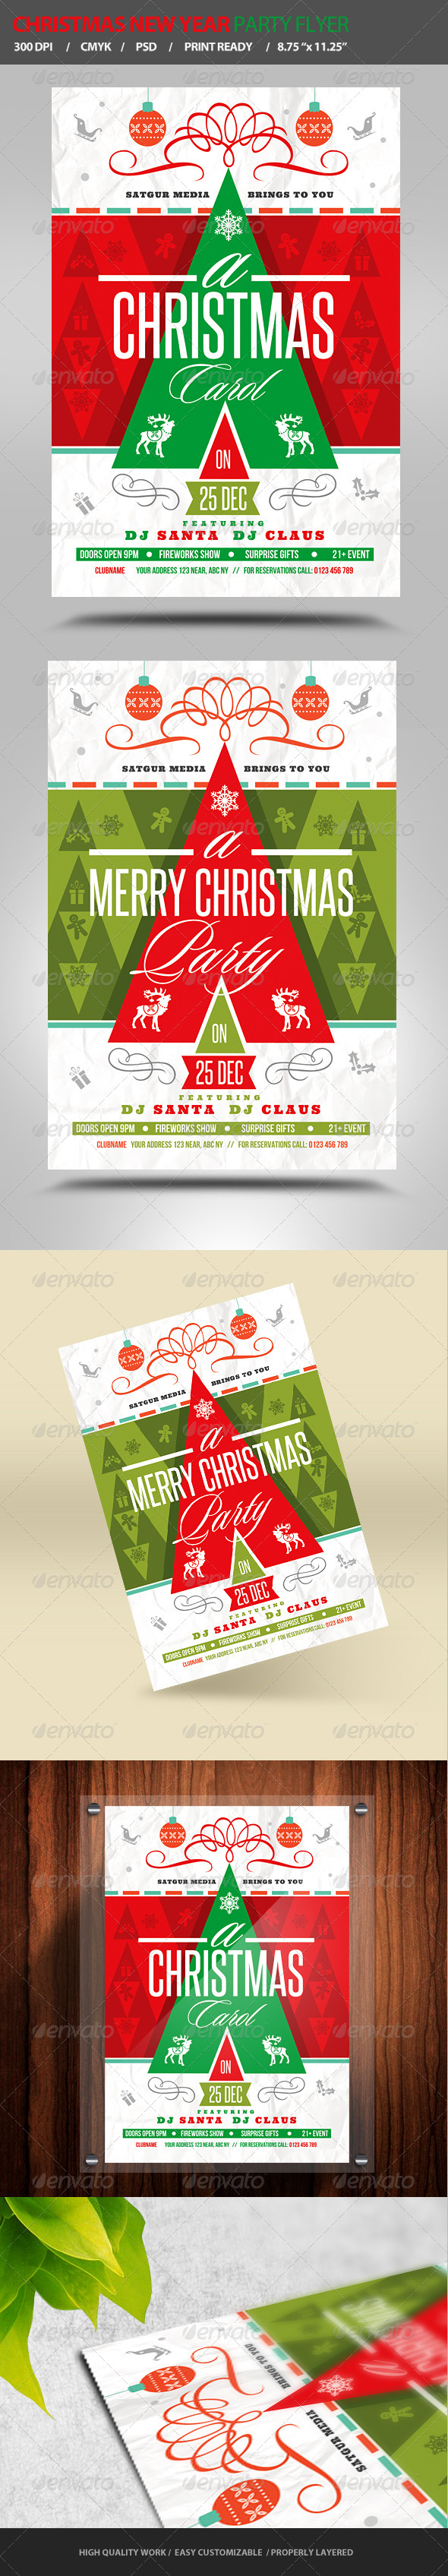 Christmas / New Year Party Flyer - Flyers Print Templates